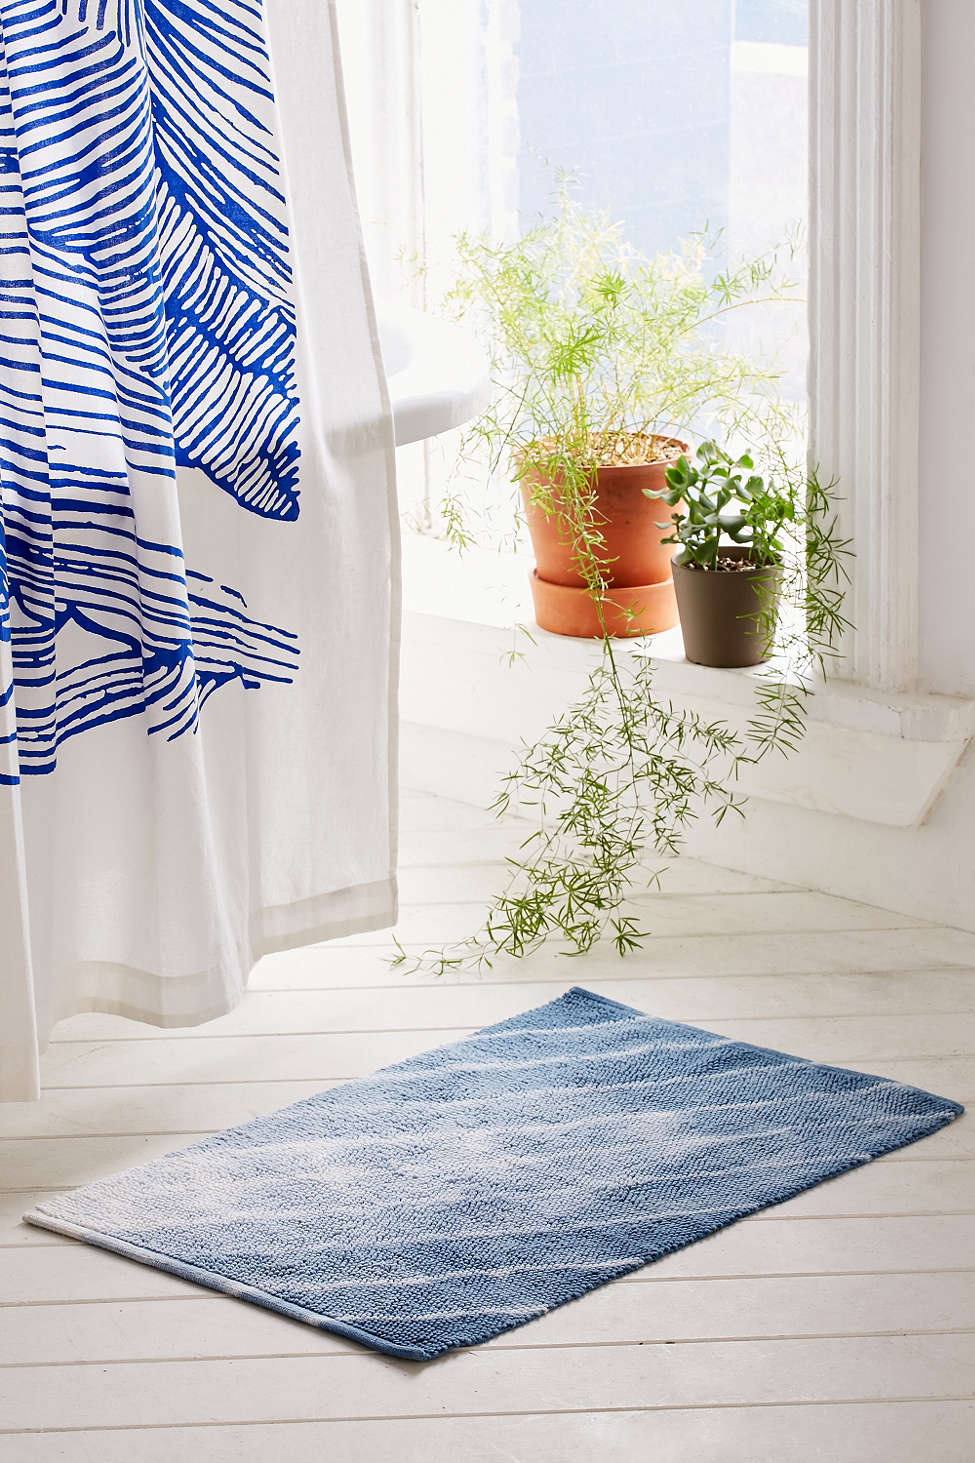 Shibori bath mat from Urban Outfitters